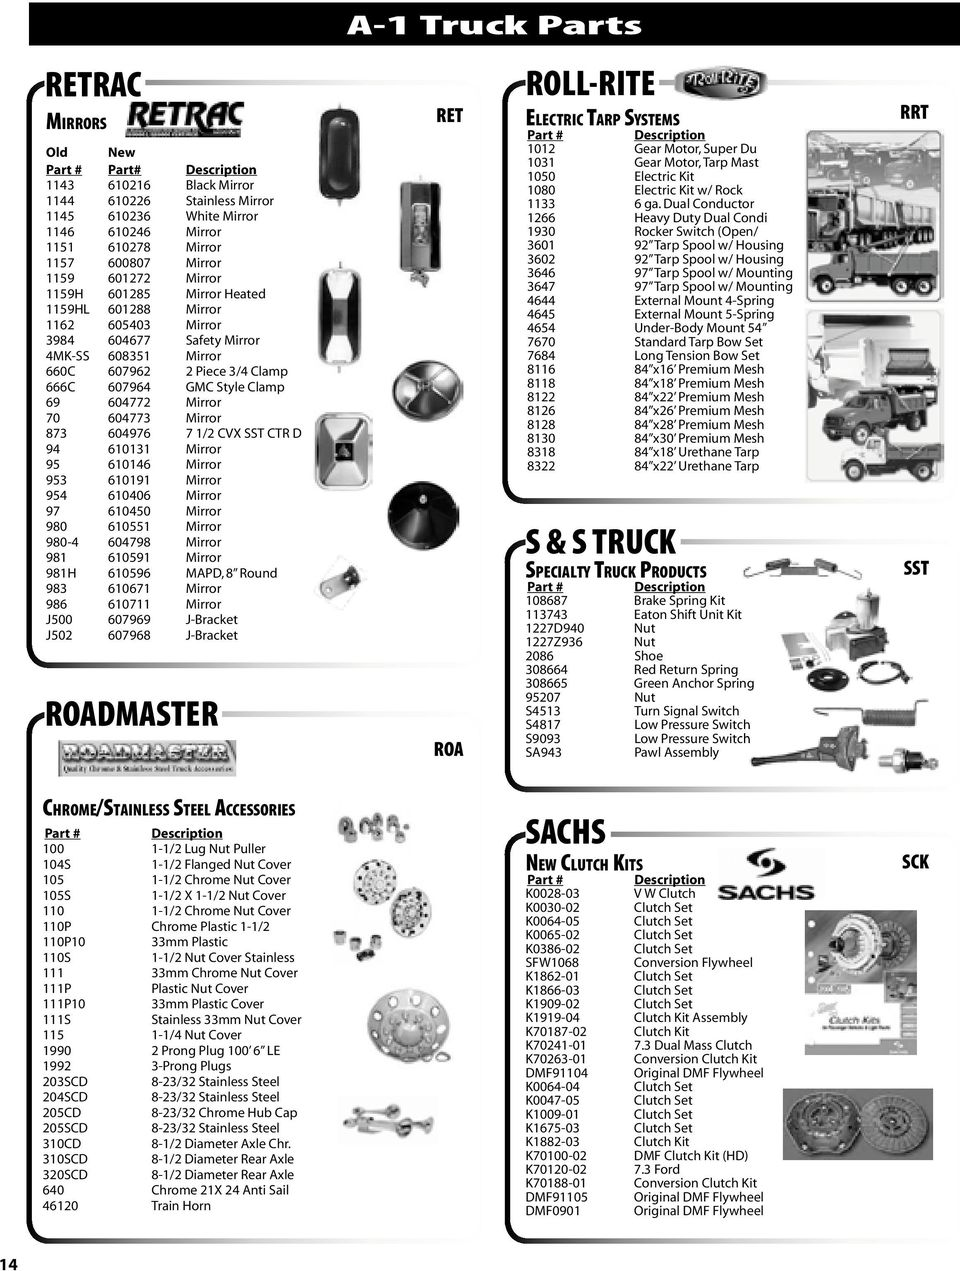 A 1 Truck Parts Speciality Book Index Pdf Electric Tarp Relay 604976 7 2 Cvx Sst Ctr D 94 610131 Mirror 95 610146 953